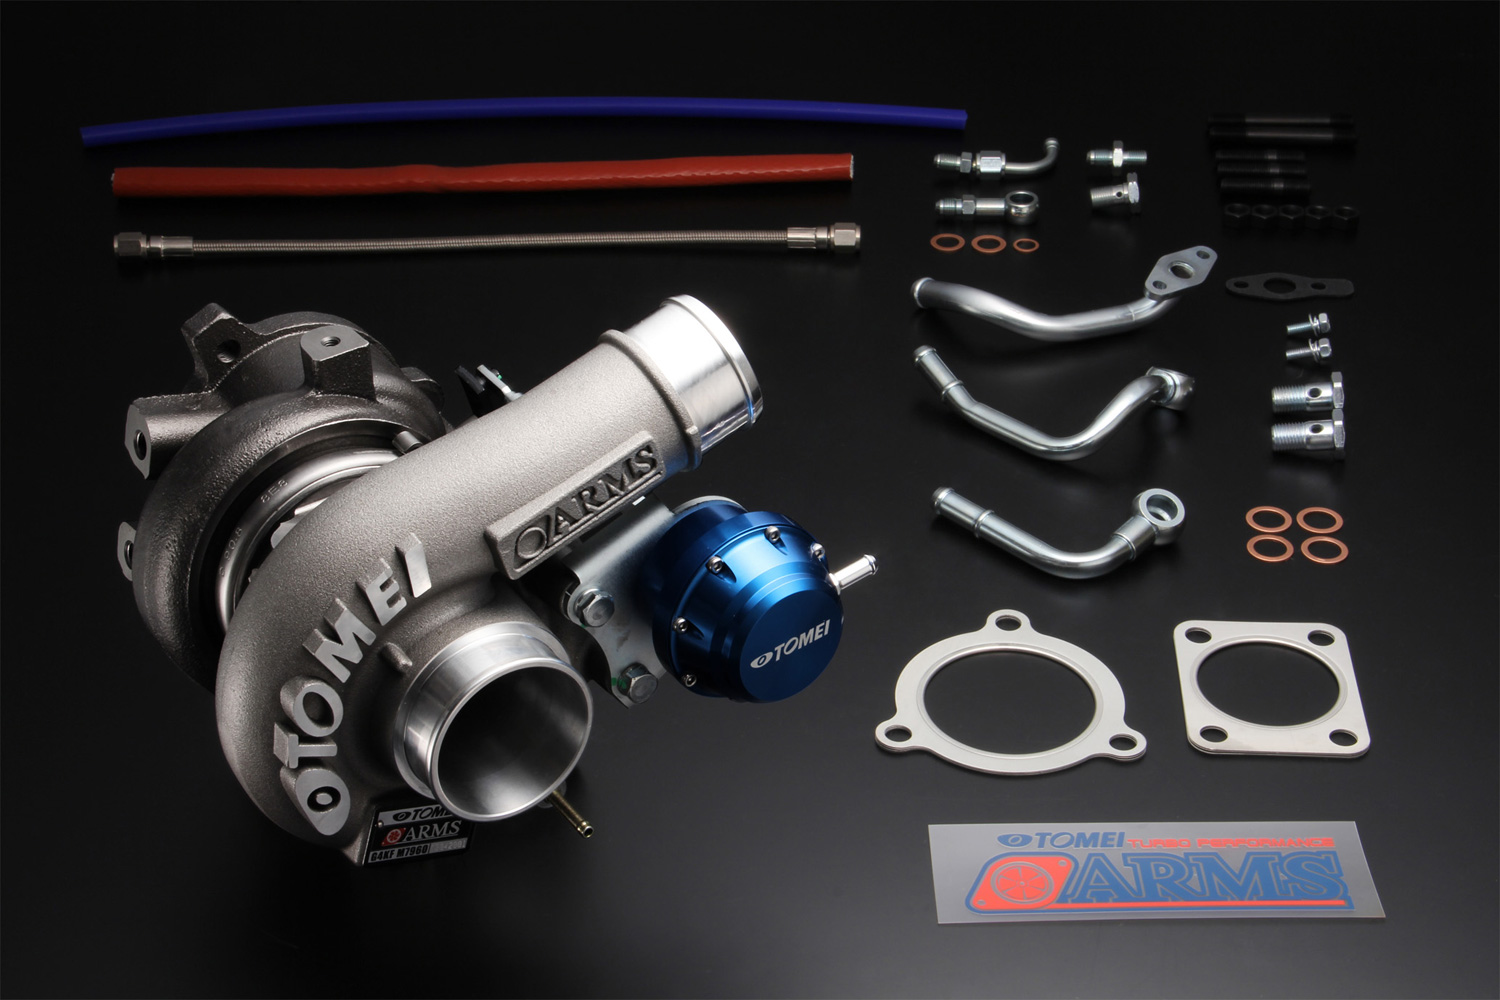 2010-2012 TOMEI ARMS HYUNDAI GENESIS COUPE M7960 TURBINE KIT